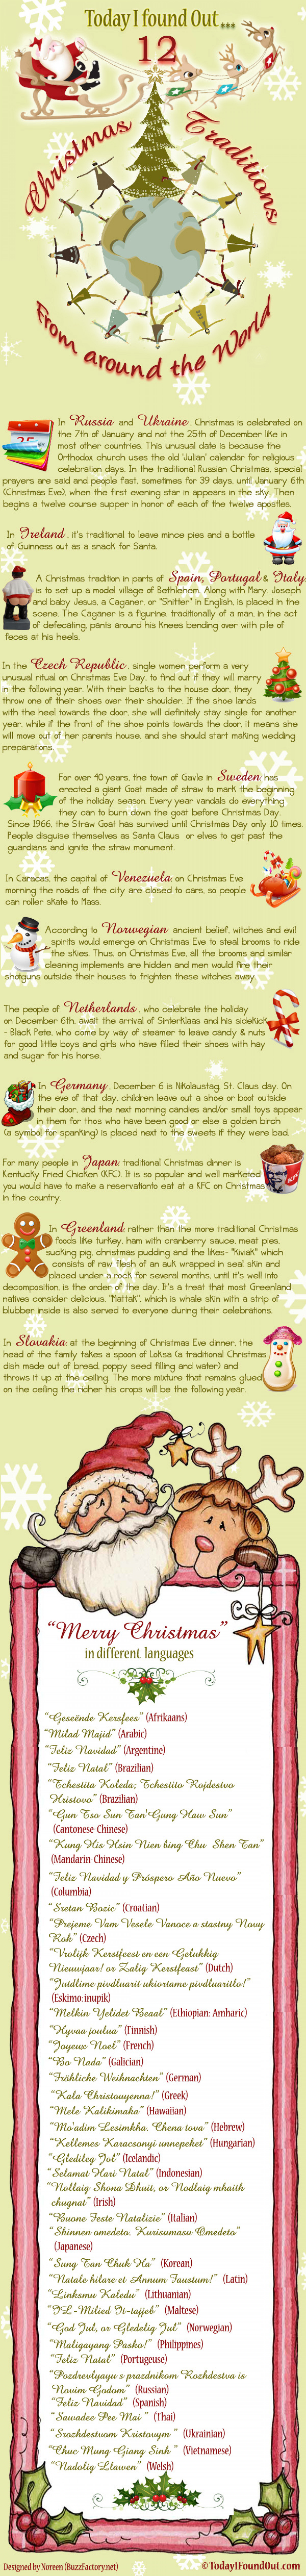 12 Christmas Traditions From Around The World Infographic